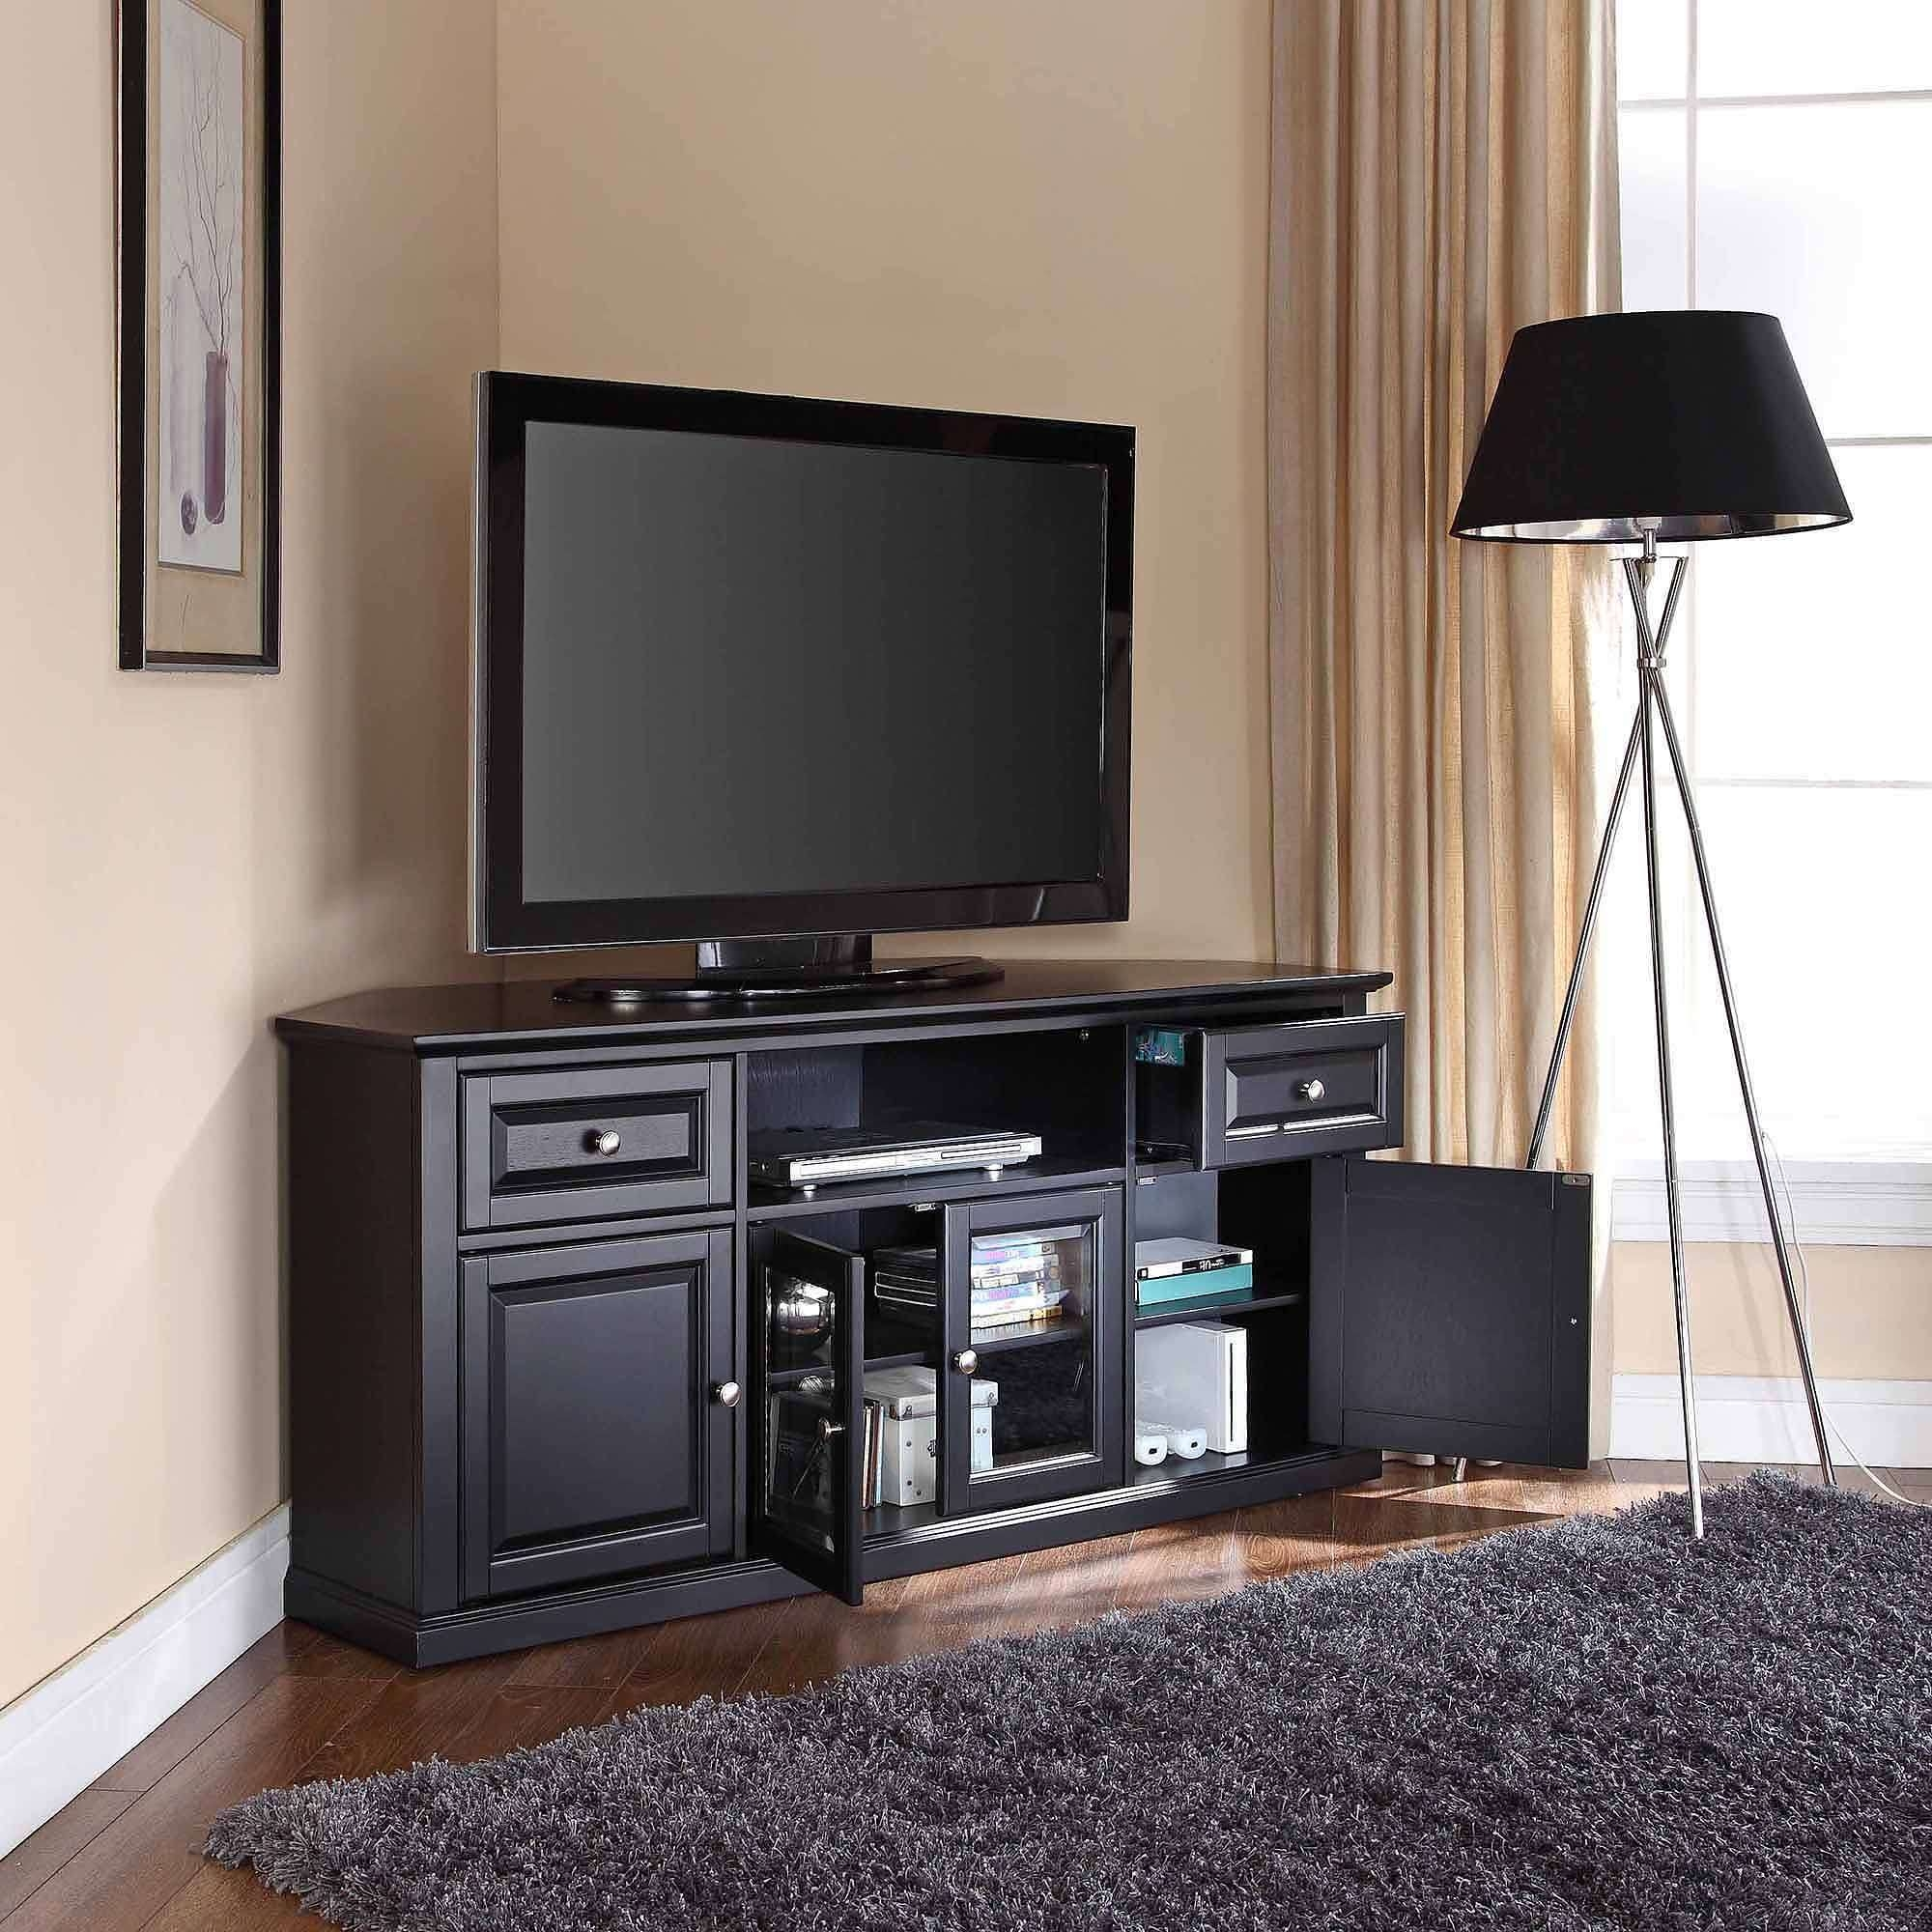 "Crosley Furniture Corner Tv Stand For Tvs Up To 60"" – Walmart Regarding Corner 60 Inch Tv Stands (View 1 of 15)"